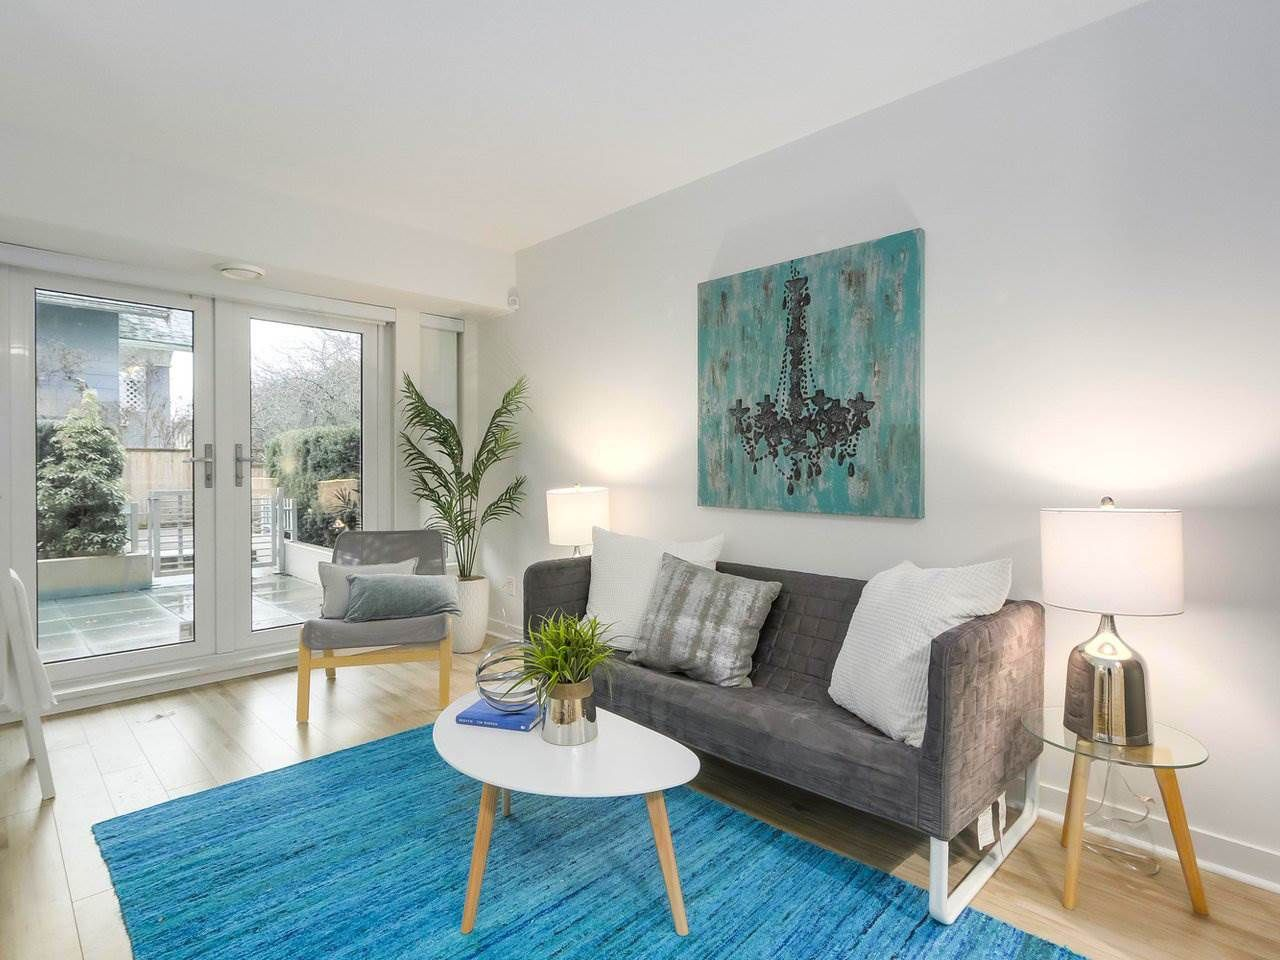 """Main Photo: 2 2888 E 2ND Avenue in Vancouver: Renfrew VE Condo for sale in """"SESAME"""" (Vancouver East)  : MLS®# R2230613"""